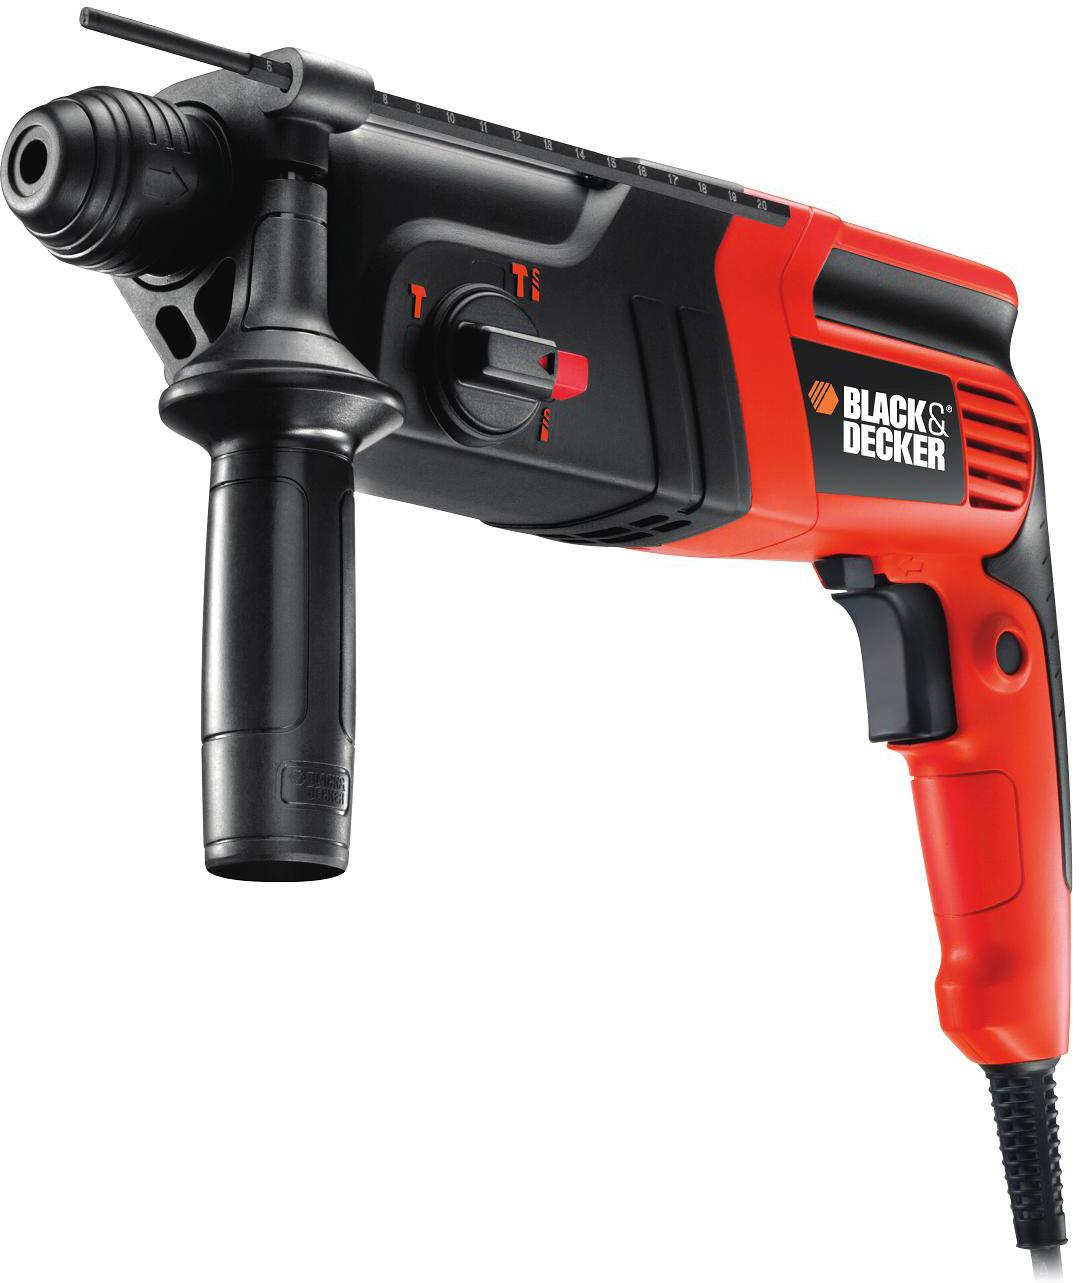 Перфоратор Black & decker Kd860ka-qs